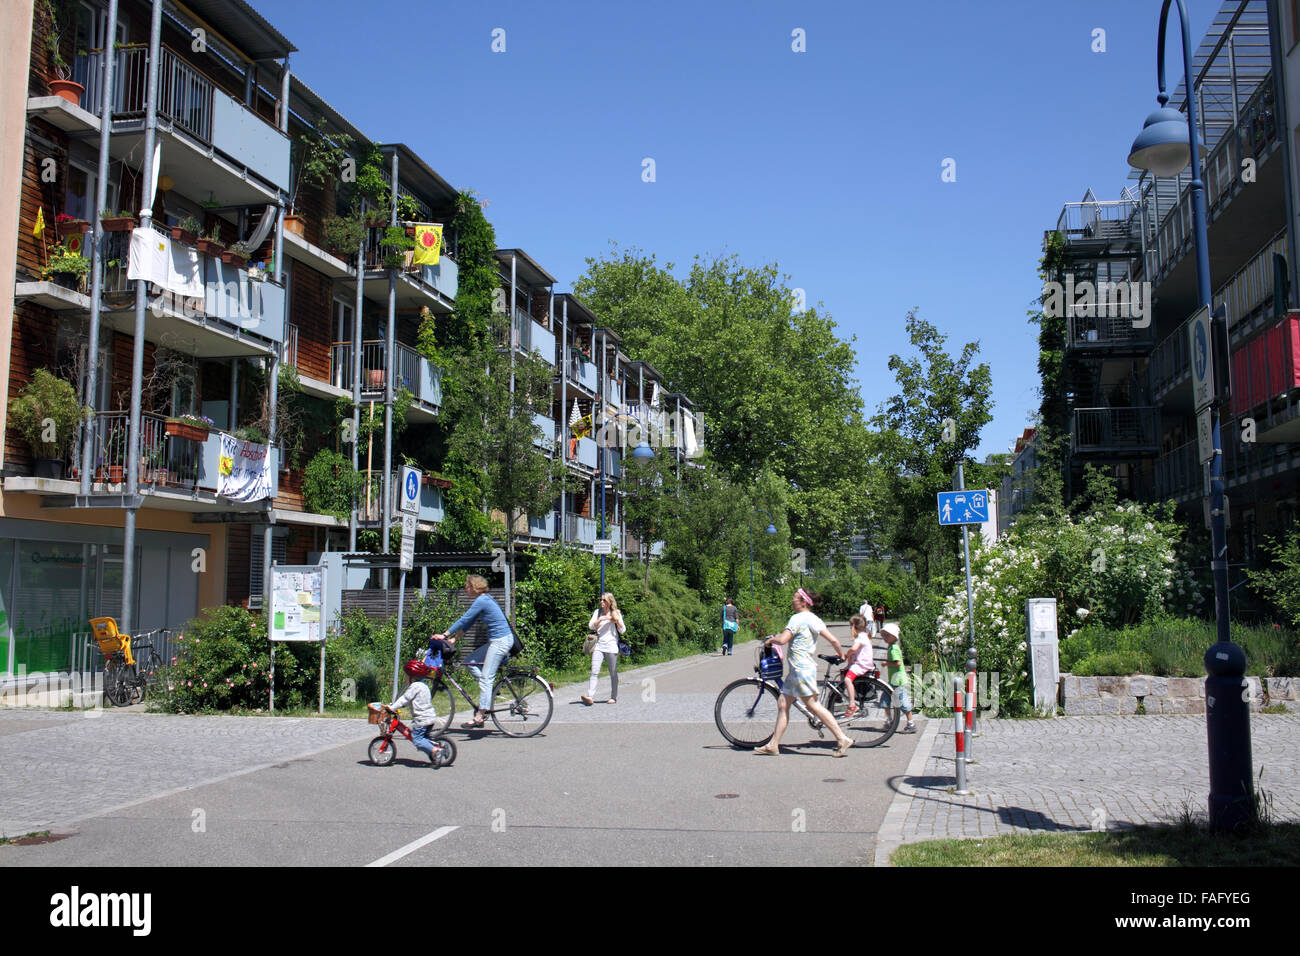 housing and cyclists in the green suburb of vauban freiburg stock photo royalty free image. Black Bedroom Furniture Sets. Home Design Ideas